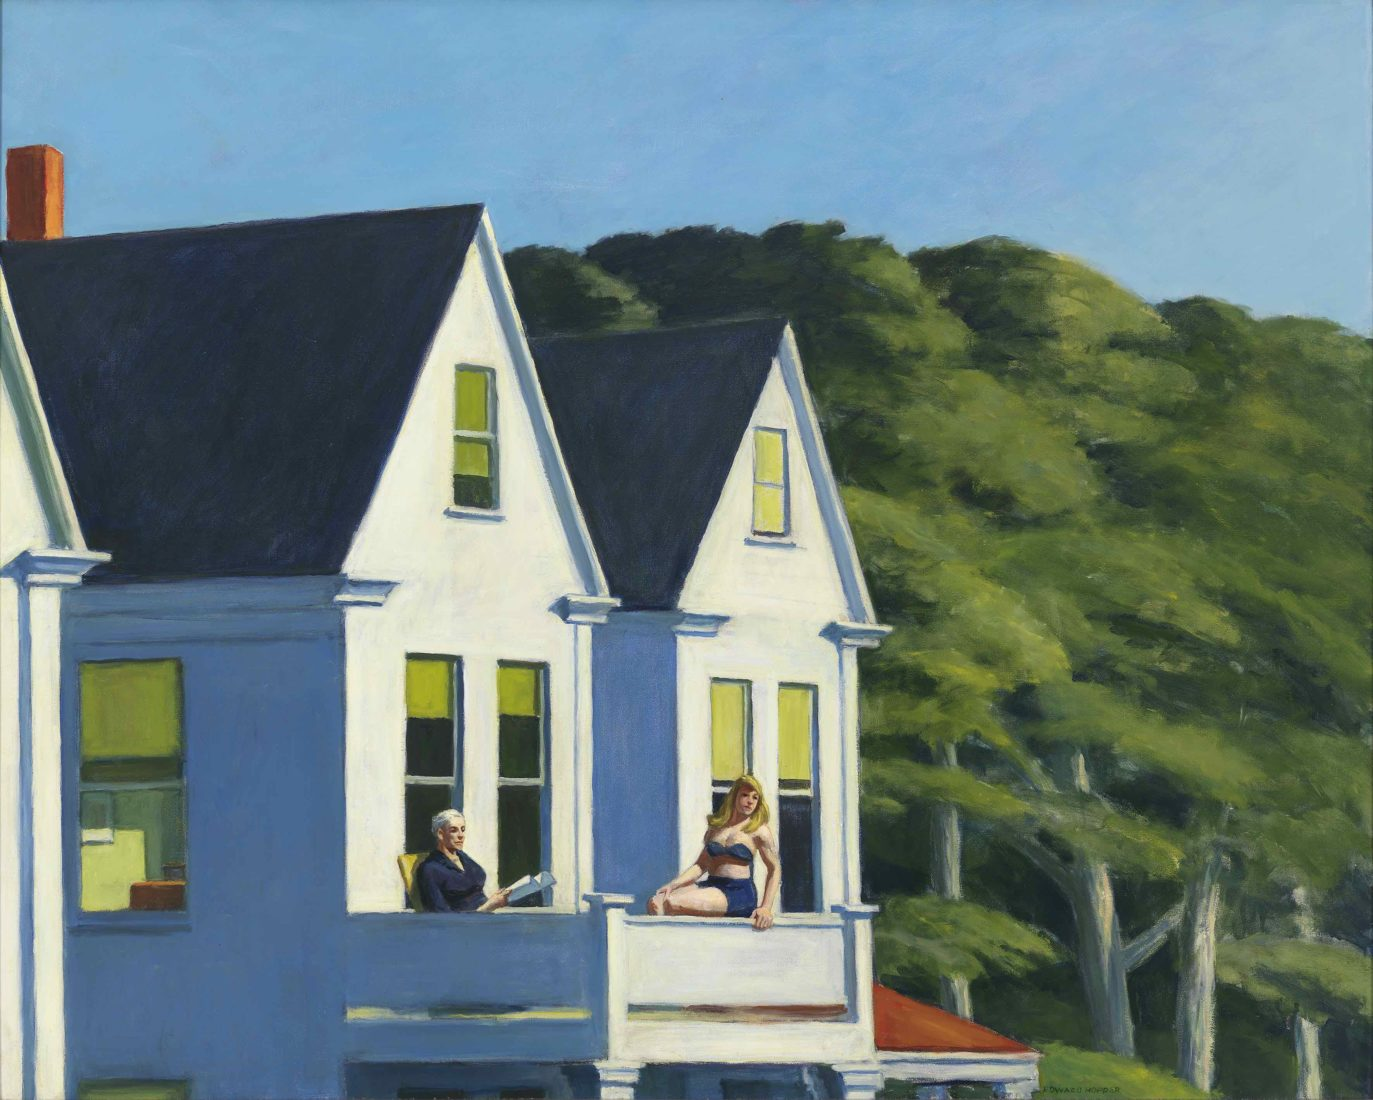 EDWARD HOPPER, SECOND STORY SUNLIGHT, 1960